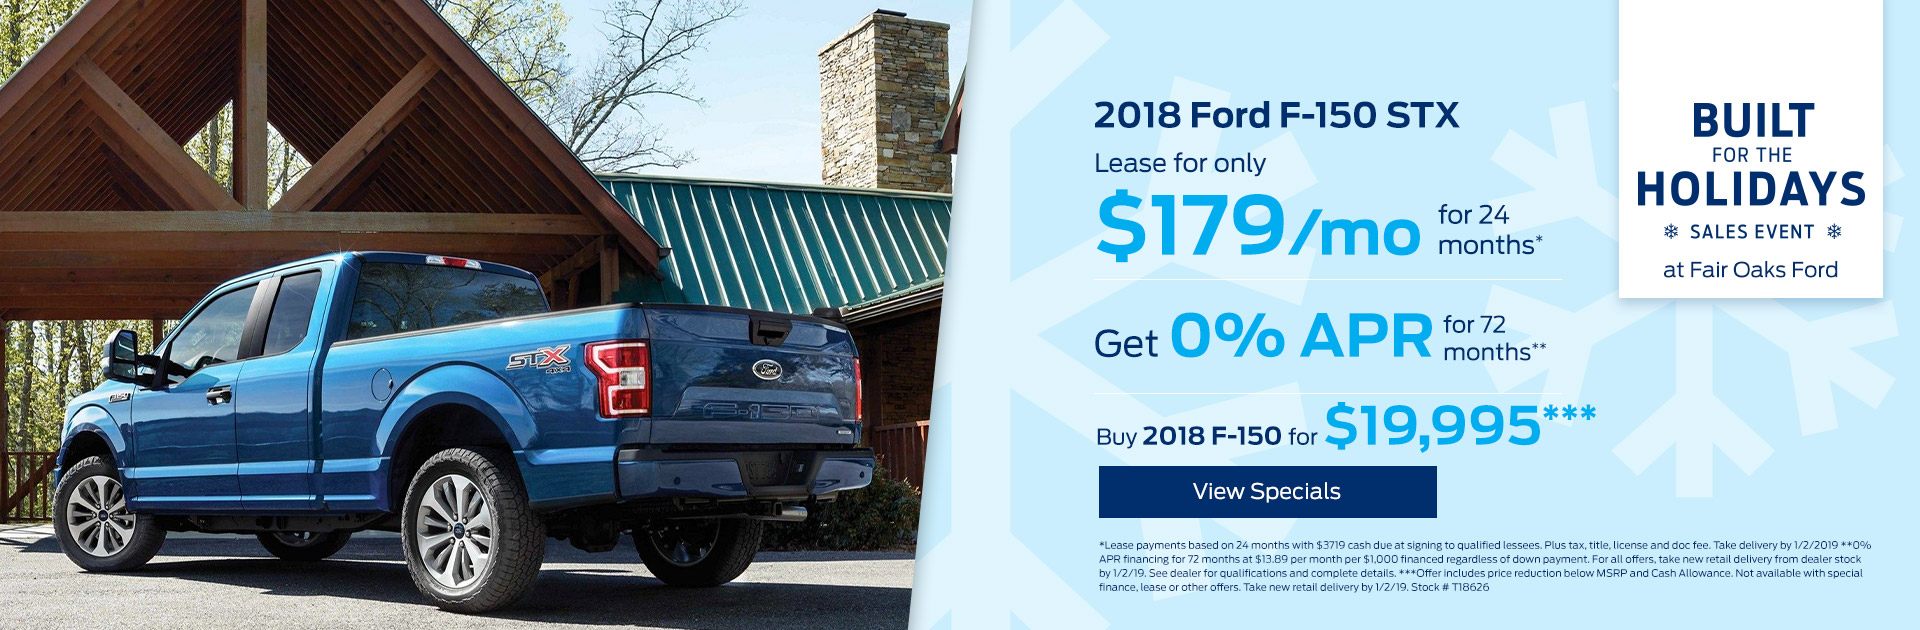 Fair Oaks Ford New Used Dealership In Naperville Il 2015 Fusion Oil Filter Location Shop Make Model